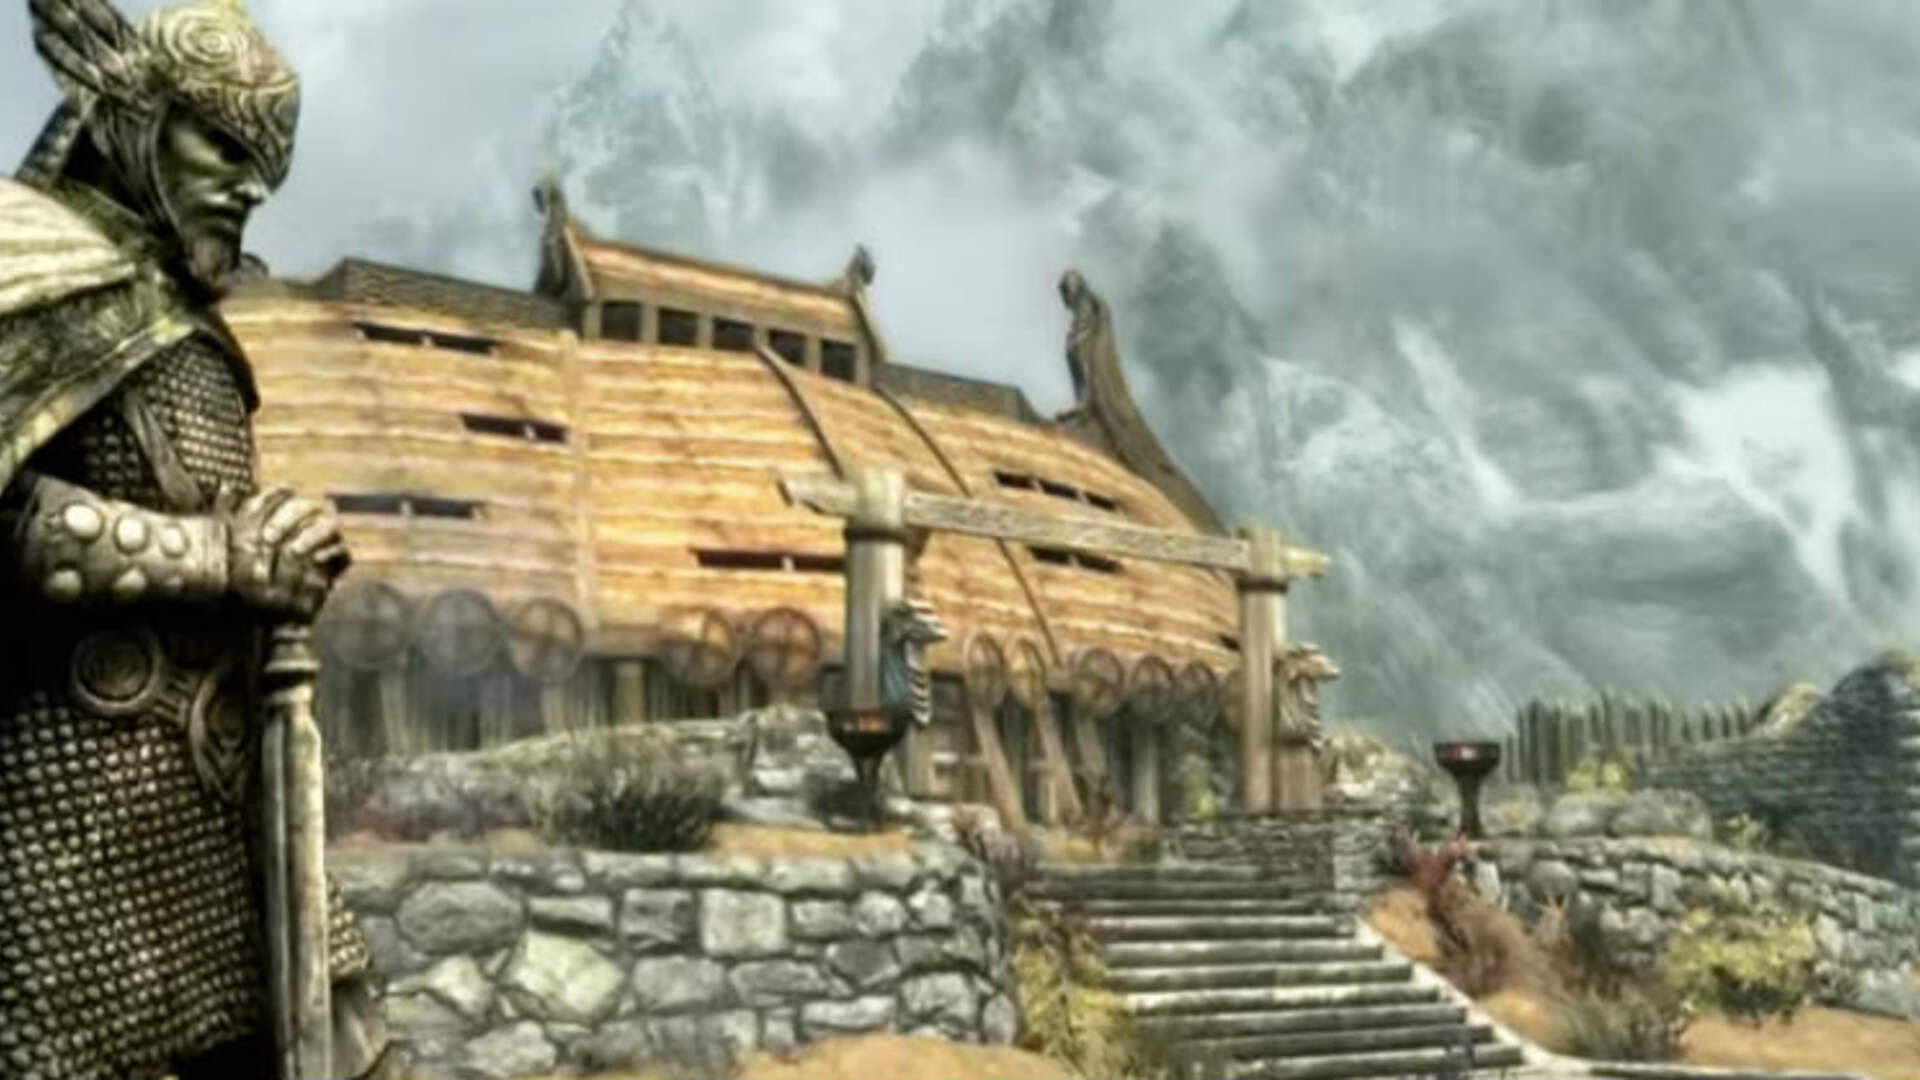 Skyrim Guide - What Difficulty Should I Play On?